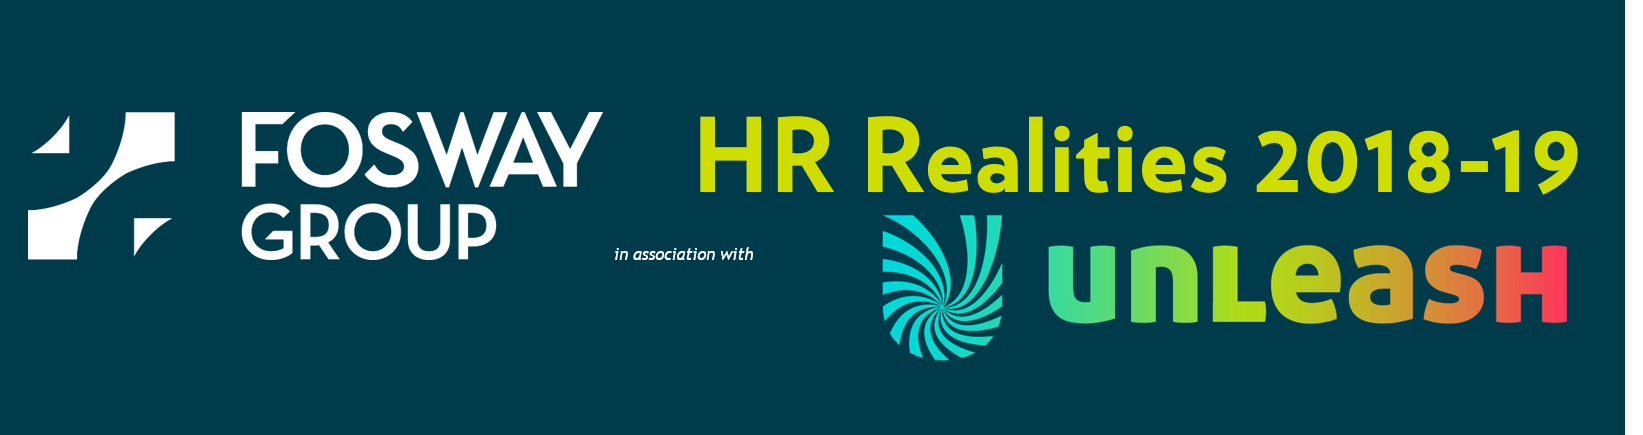 Fosway UNLEASH HR Realities 2018-19 Web banner